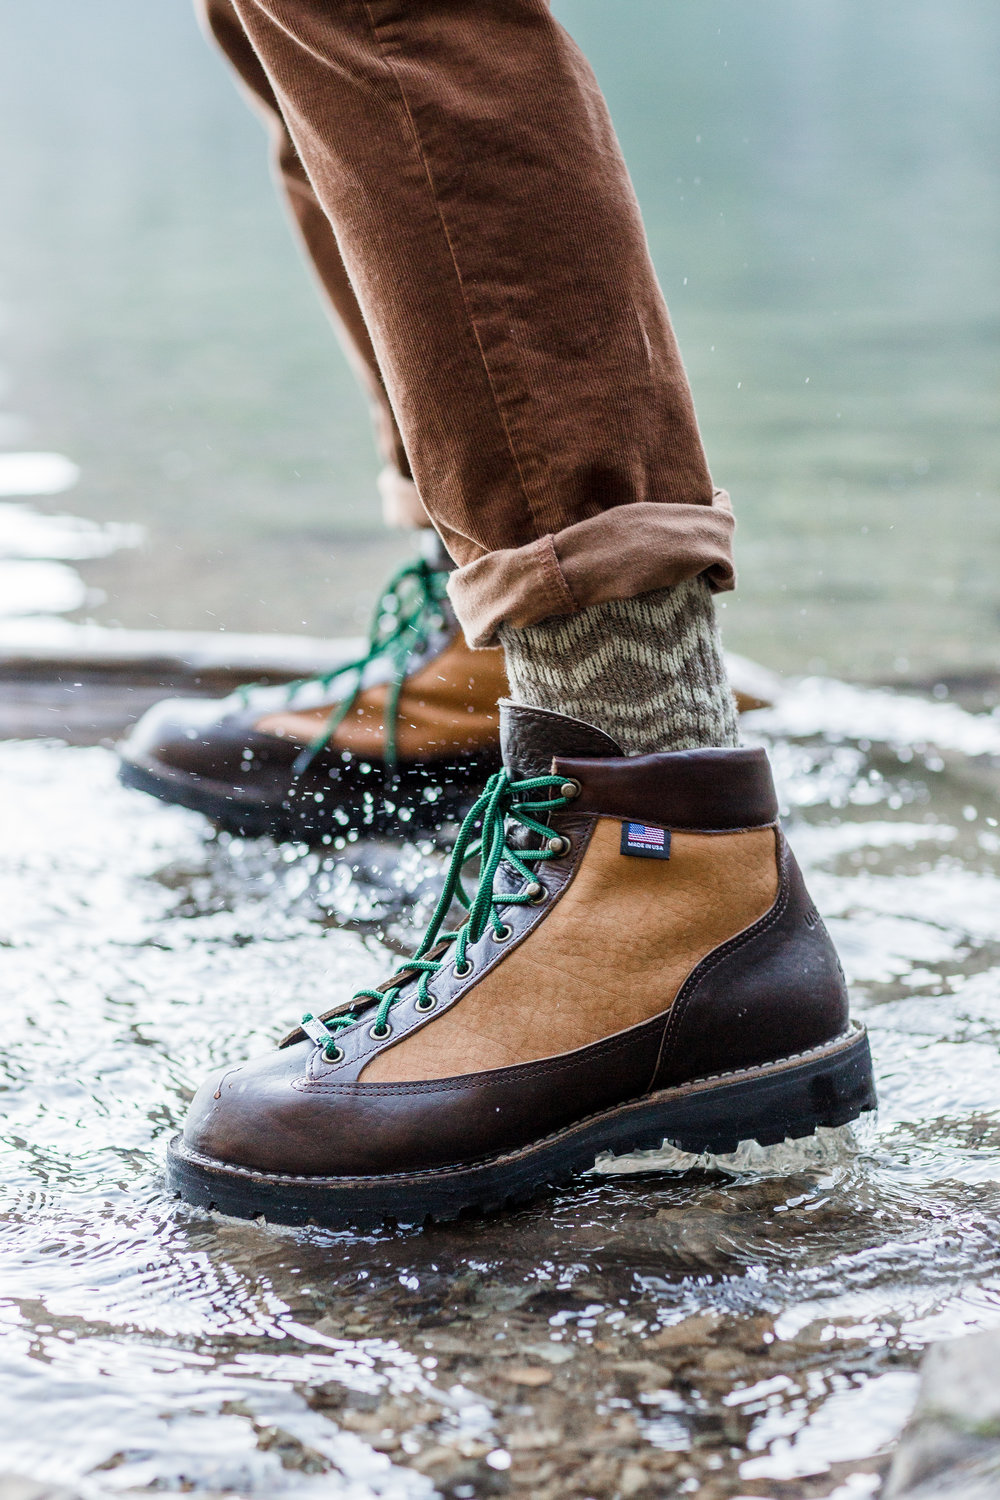 The Bison Light Boots are made of waterproof bison leather, and lined with waterproof and breathable Gore-Tex.